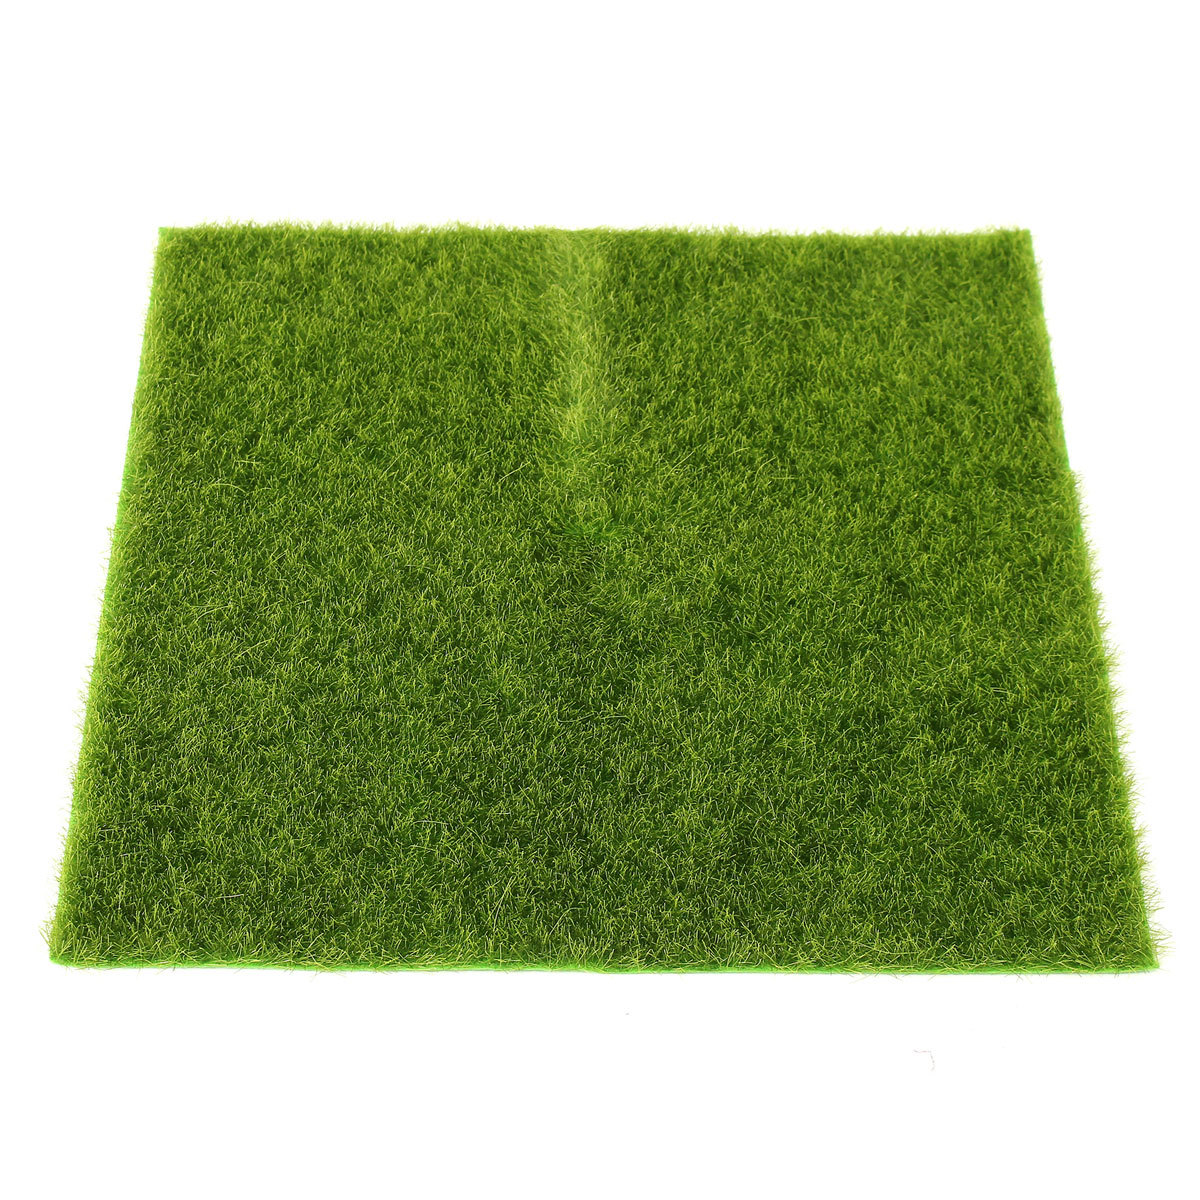 artificial grass fake lawn turf landscape garden ornament